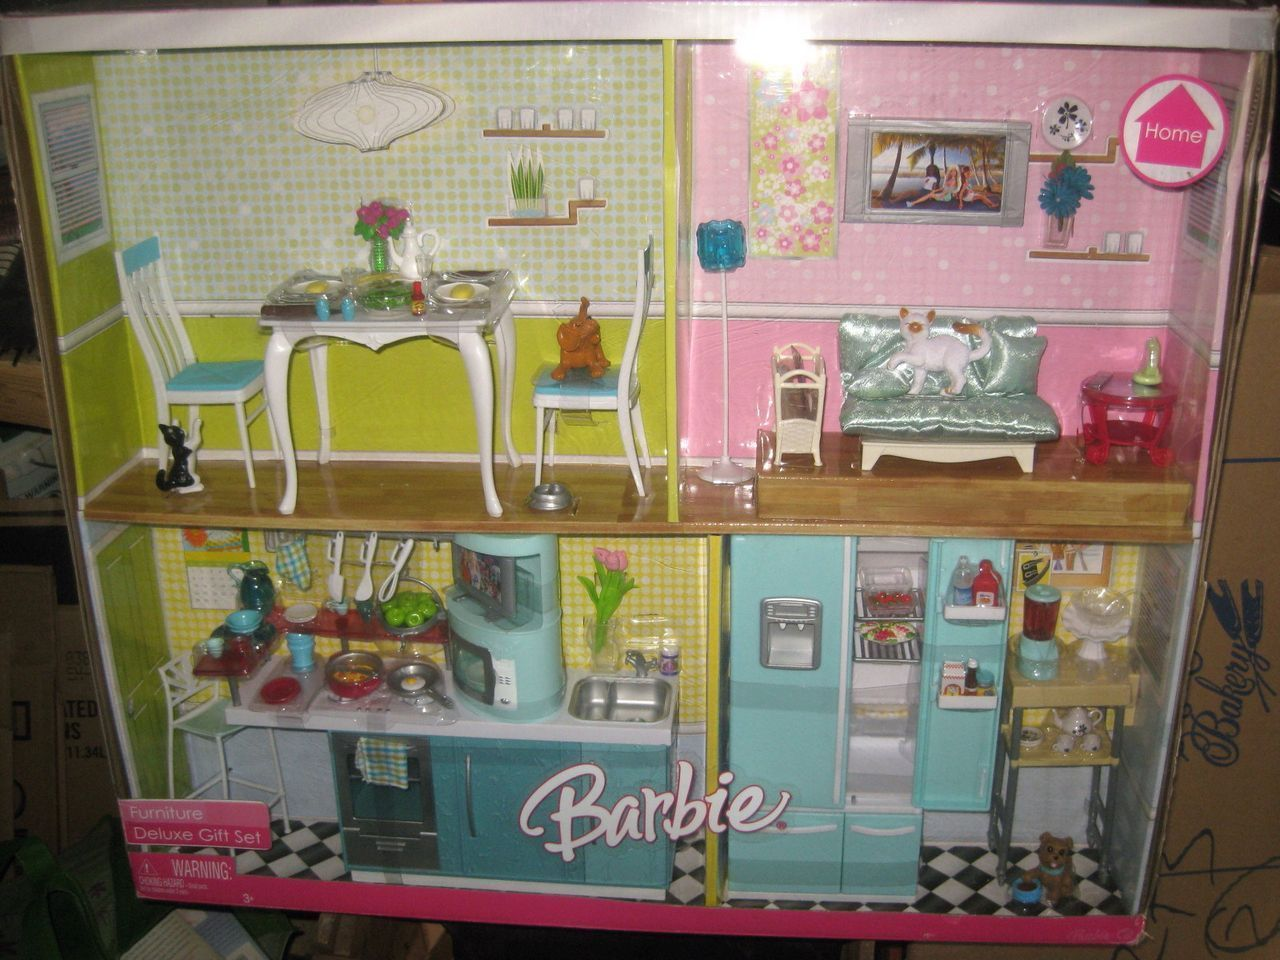 Barbie Home Furniture Deluxe Kitchen and Living